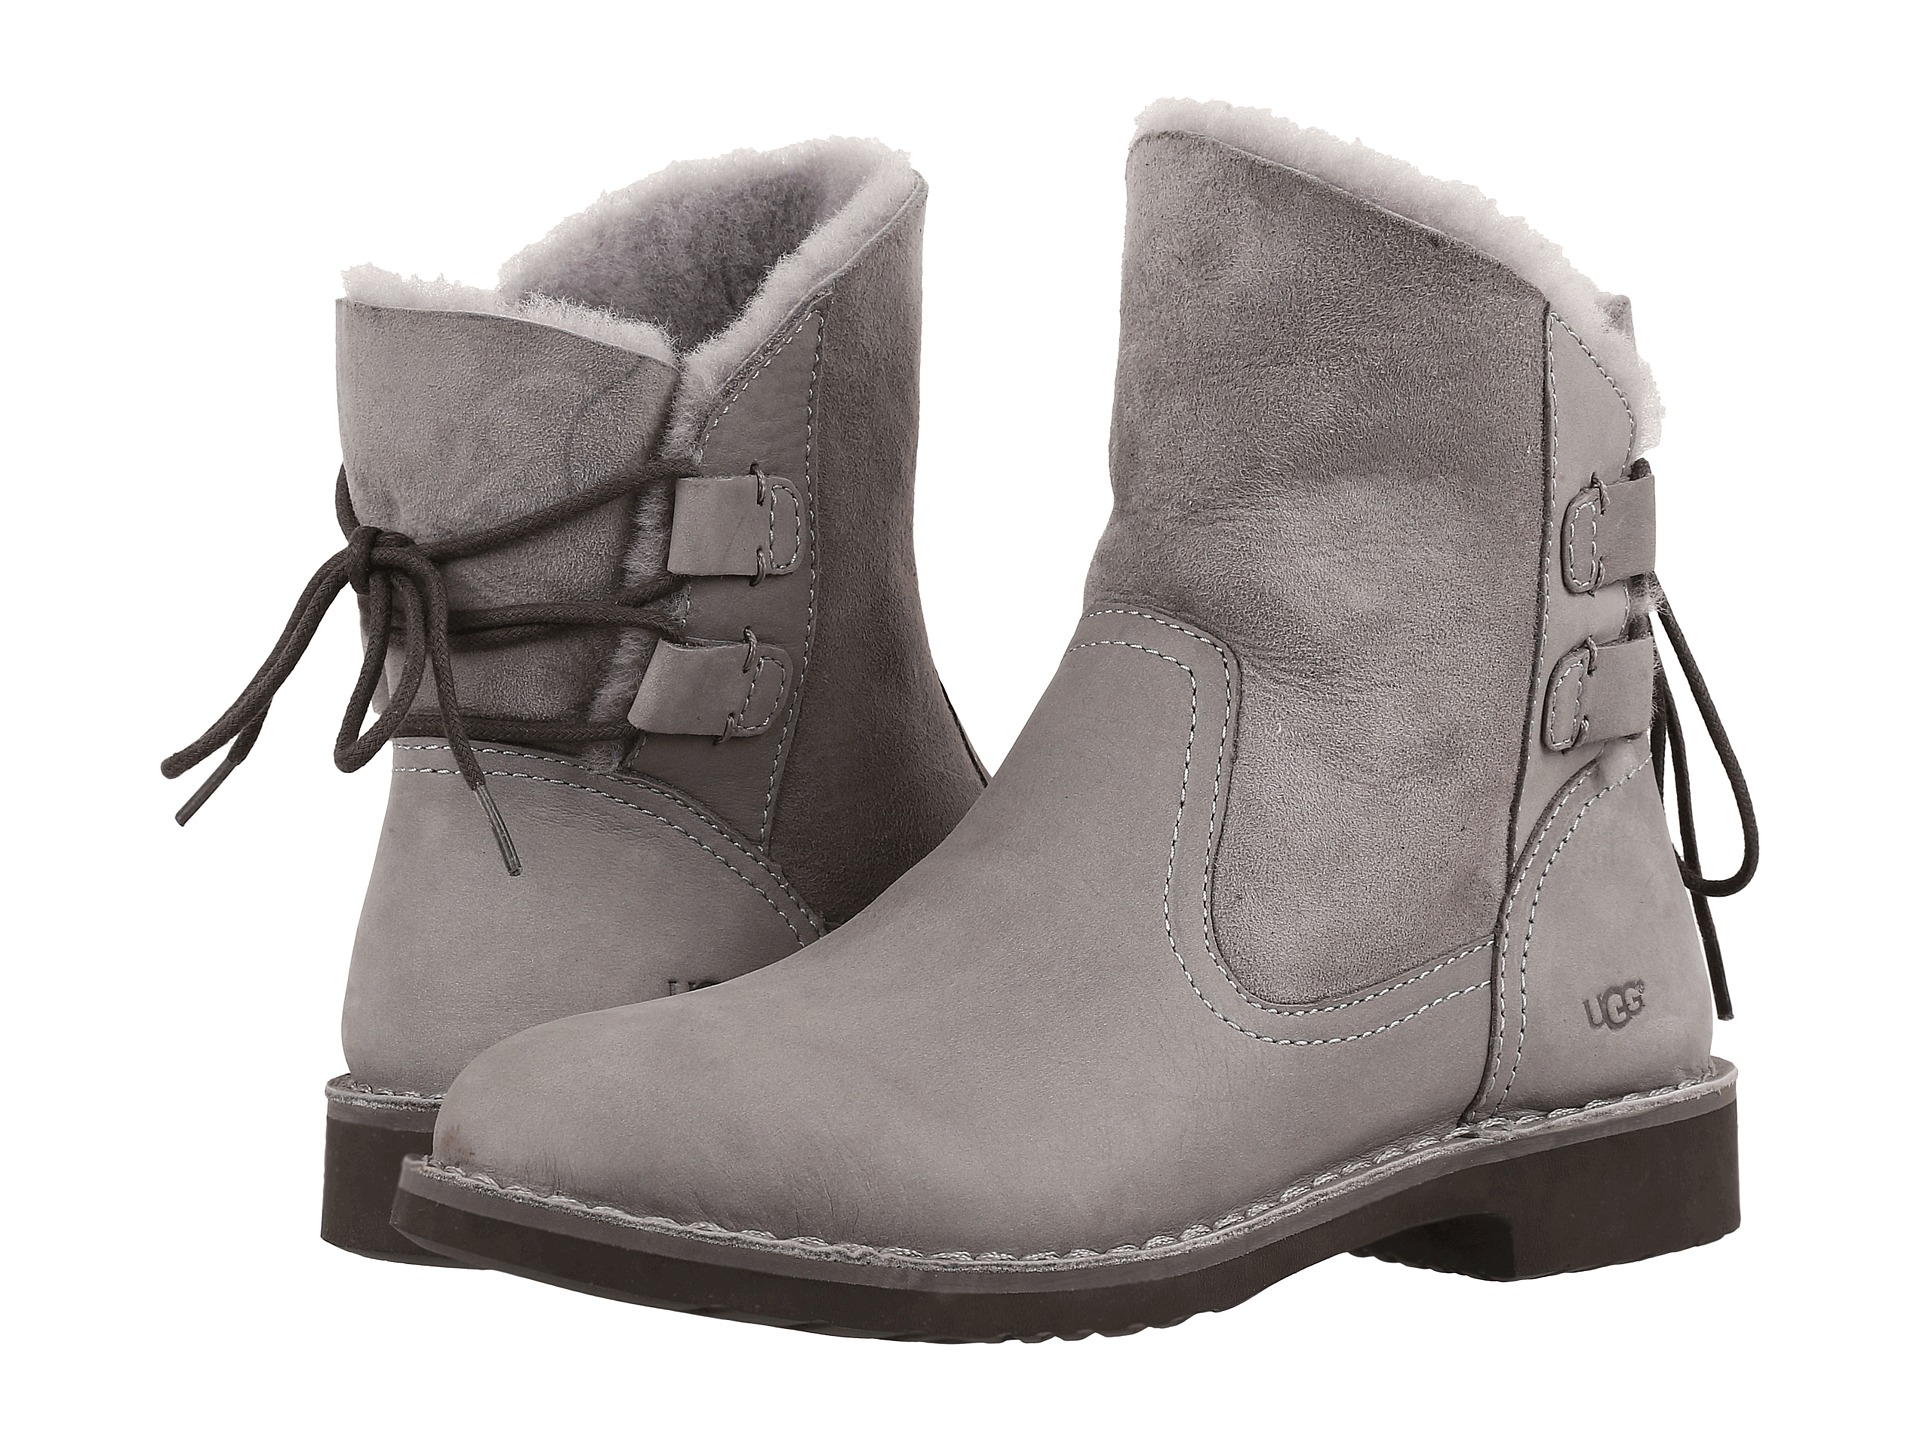 uggs boots on sale zappos. Black Bedroom Furniture Sets. Home Design Ideas